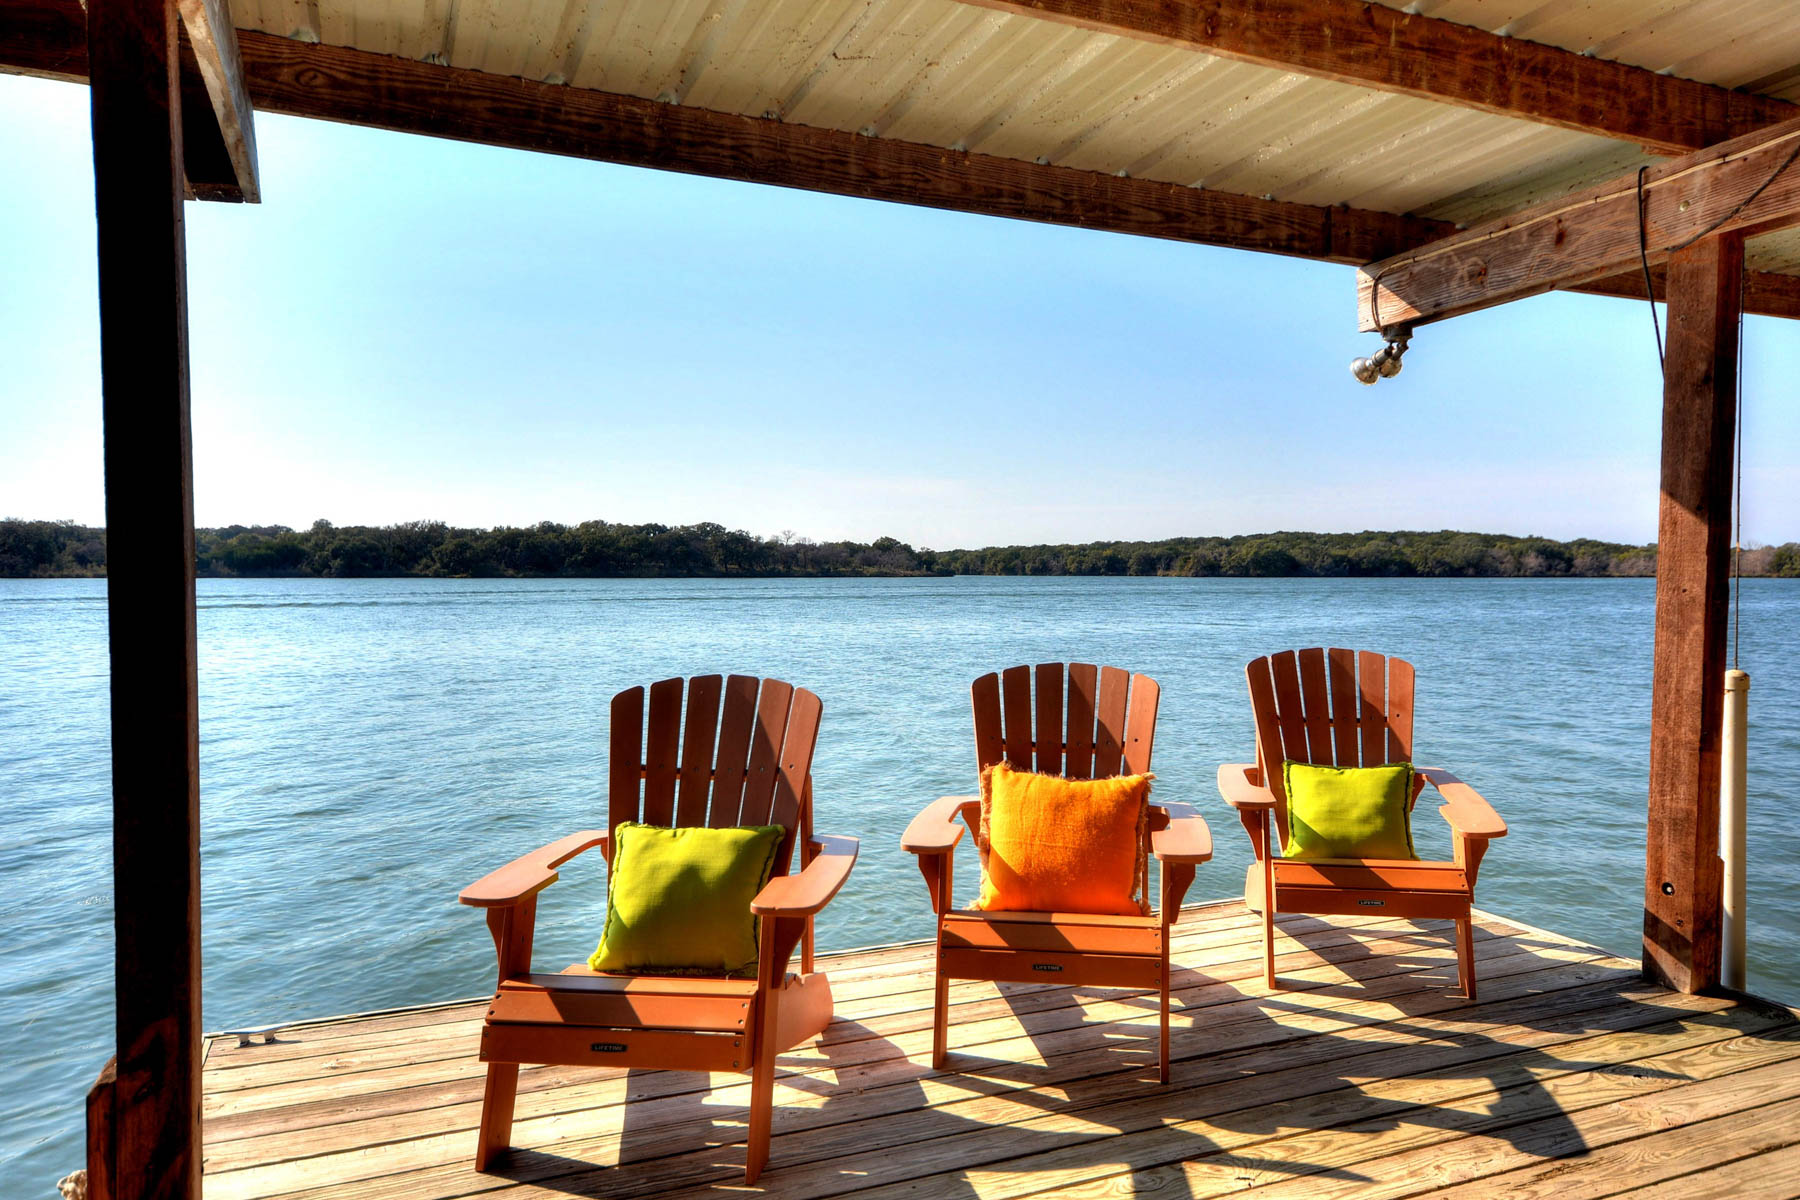 Casa Unifamiliar por un Venta en Enjoy the Good Life on Lake LBJ 110 Circle Pt Kingsland, Texas 78639 Estados Unidos